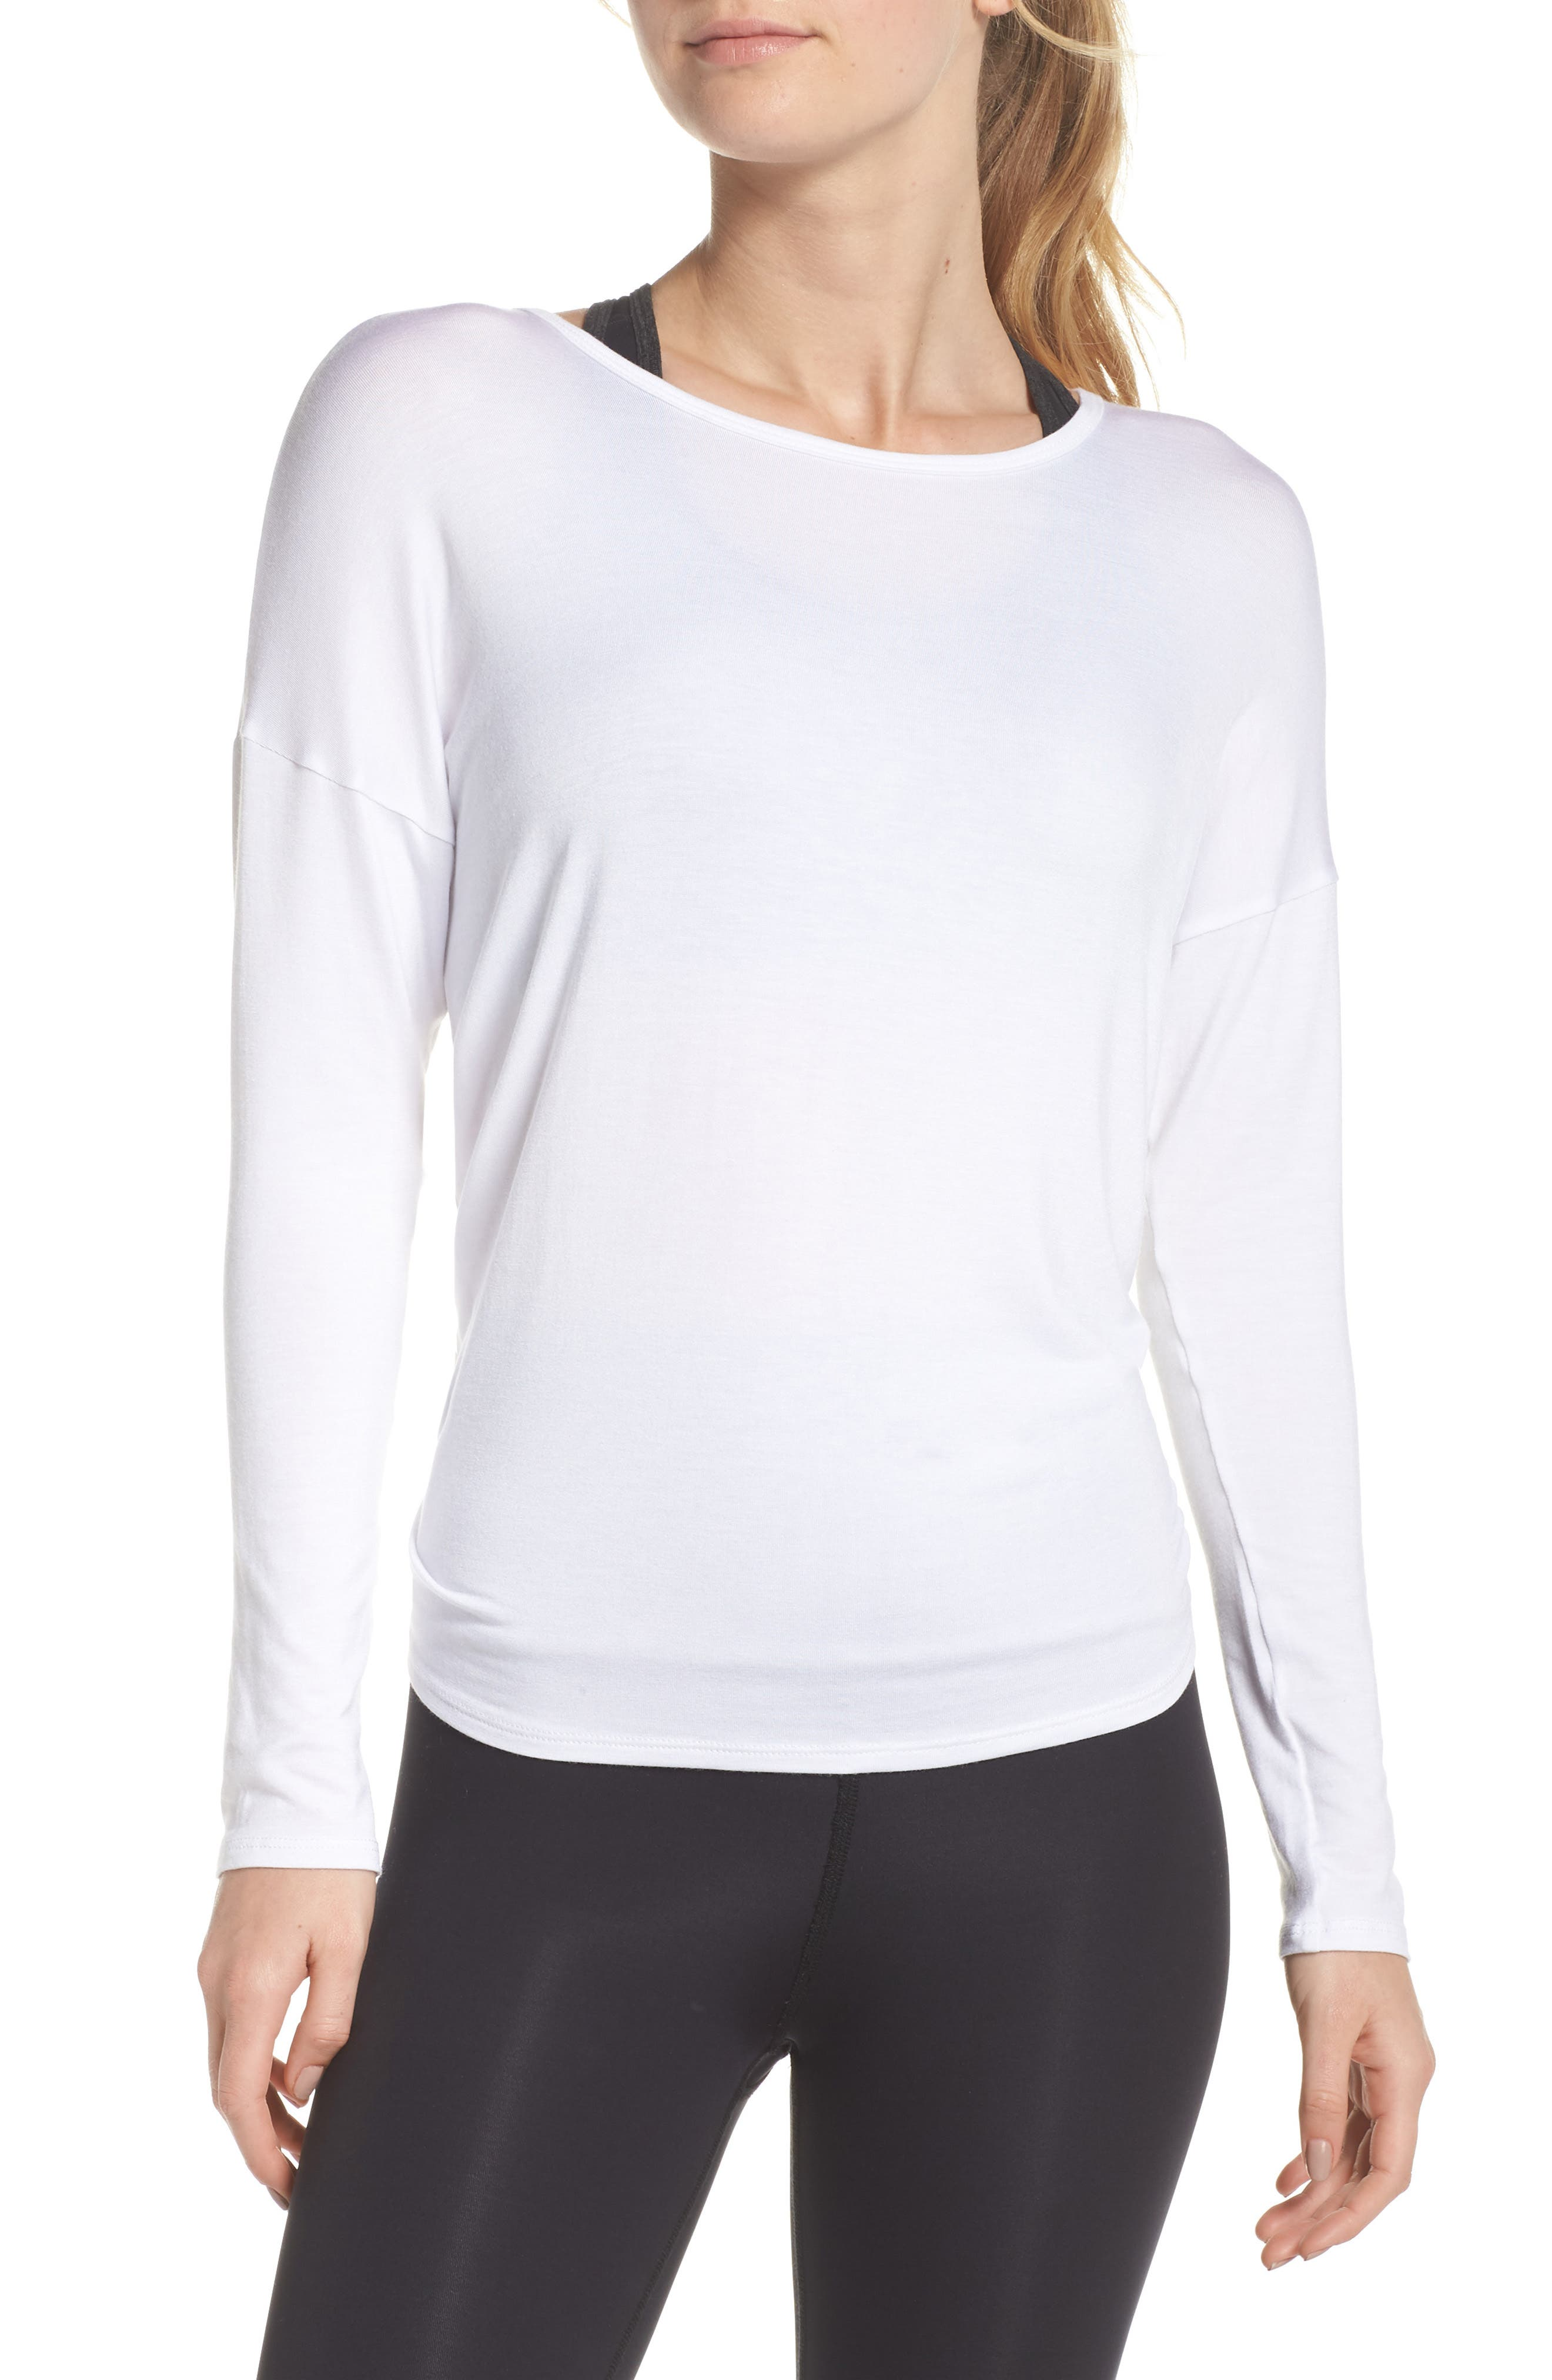 BEYOND YOGA TIE BACK PULLOVER